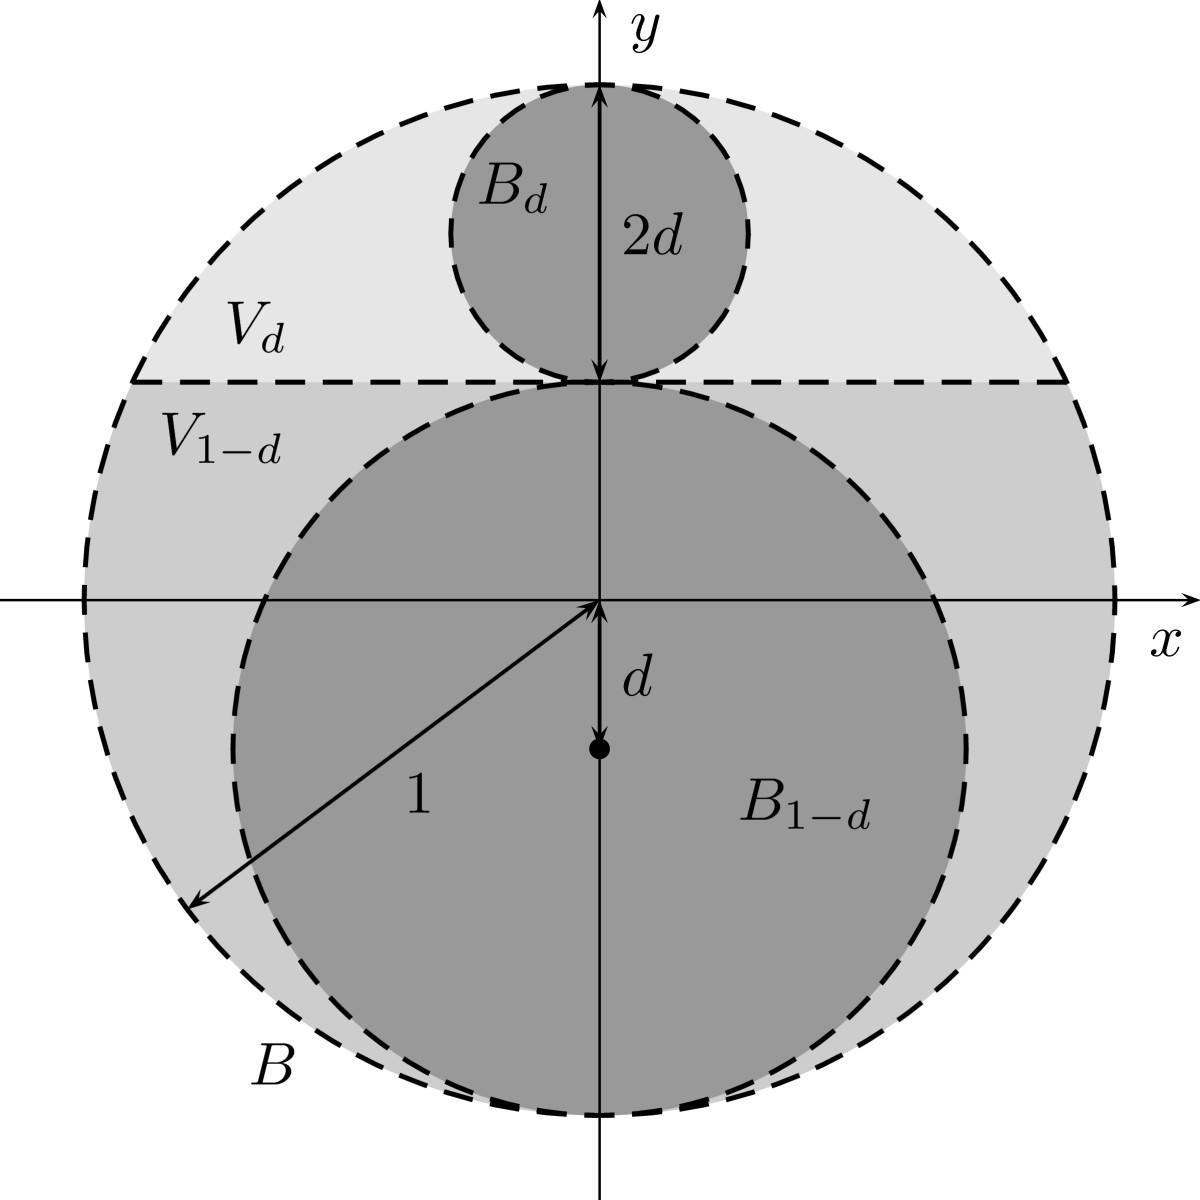 https://static-content.springer.com/image/art%3A10.1186%2F1687-2770-2011-27/MediaObjects/13661_2011_Article_73_Fig2_HTML.jpg